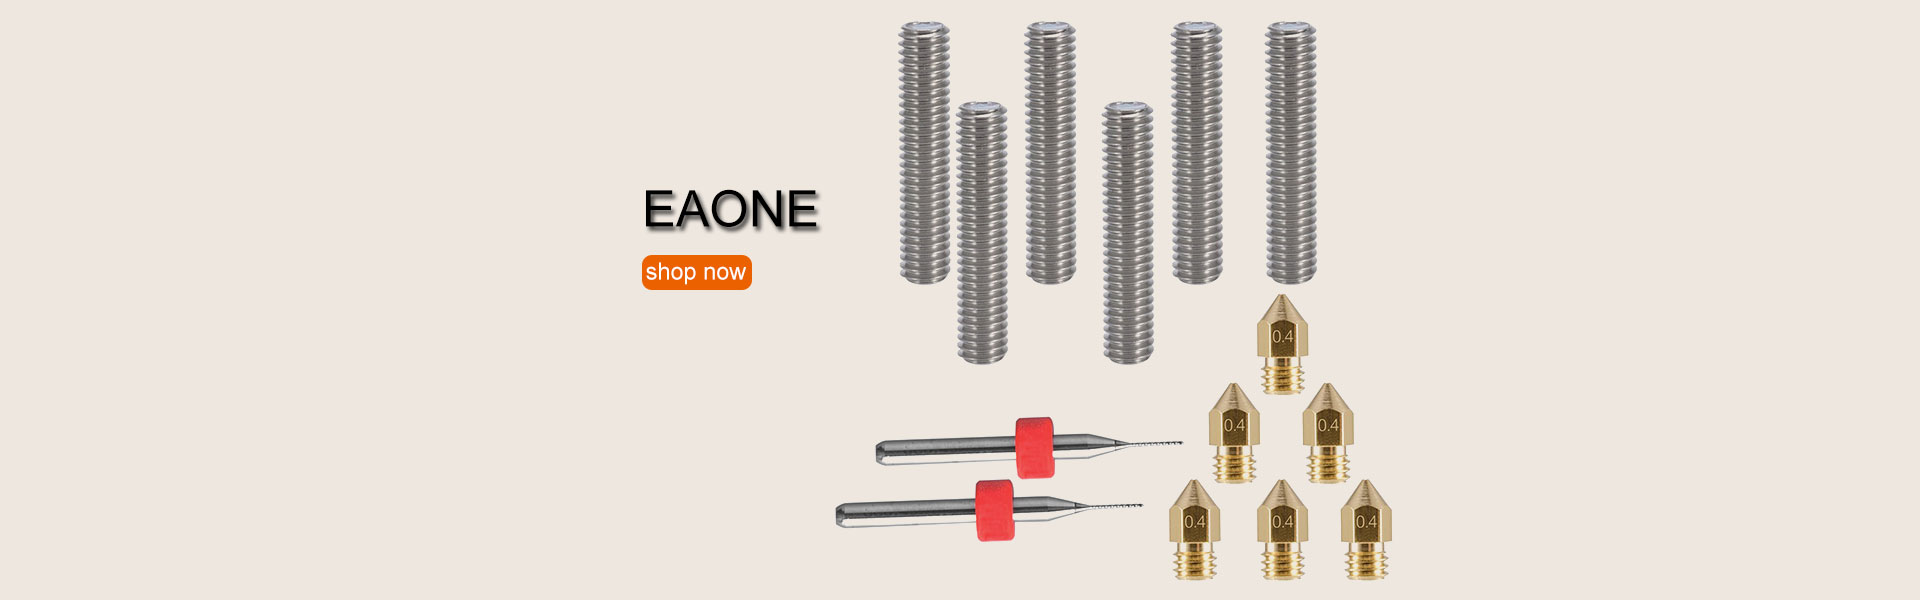 EAONE 6pcs 30MM Length Extruder 1.75MM Tube and 6pcs 0.4MM Brass Extruder Nozzle Print Heads for MK8